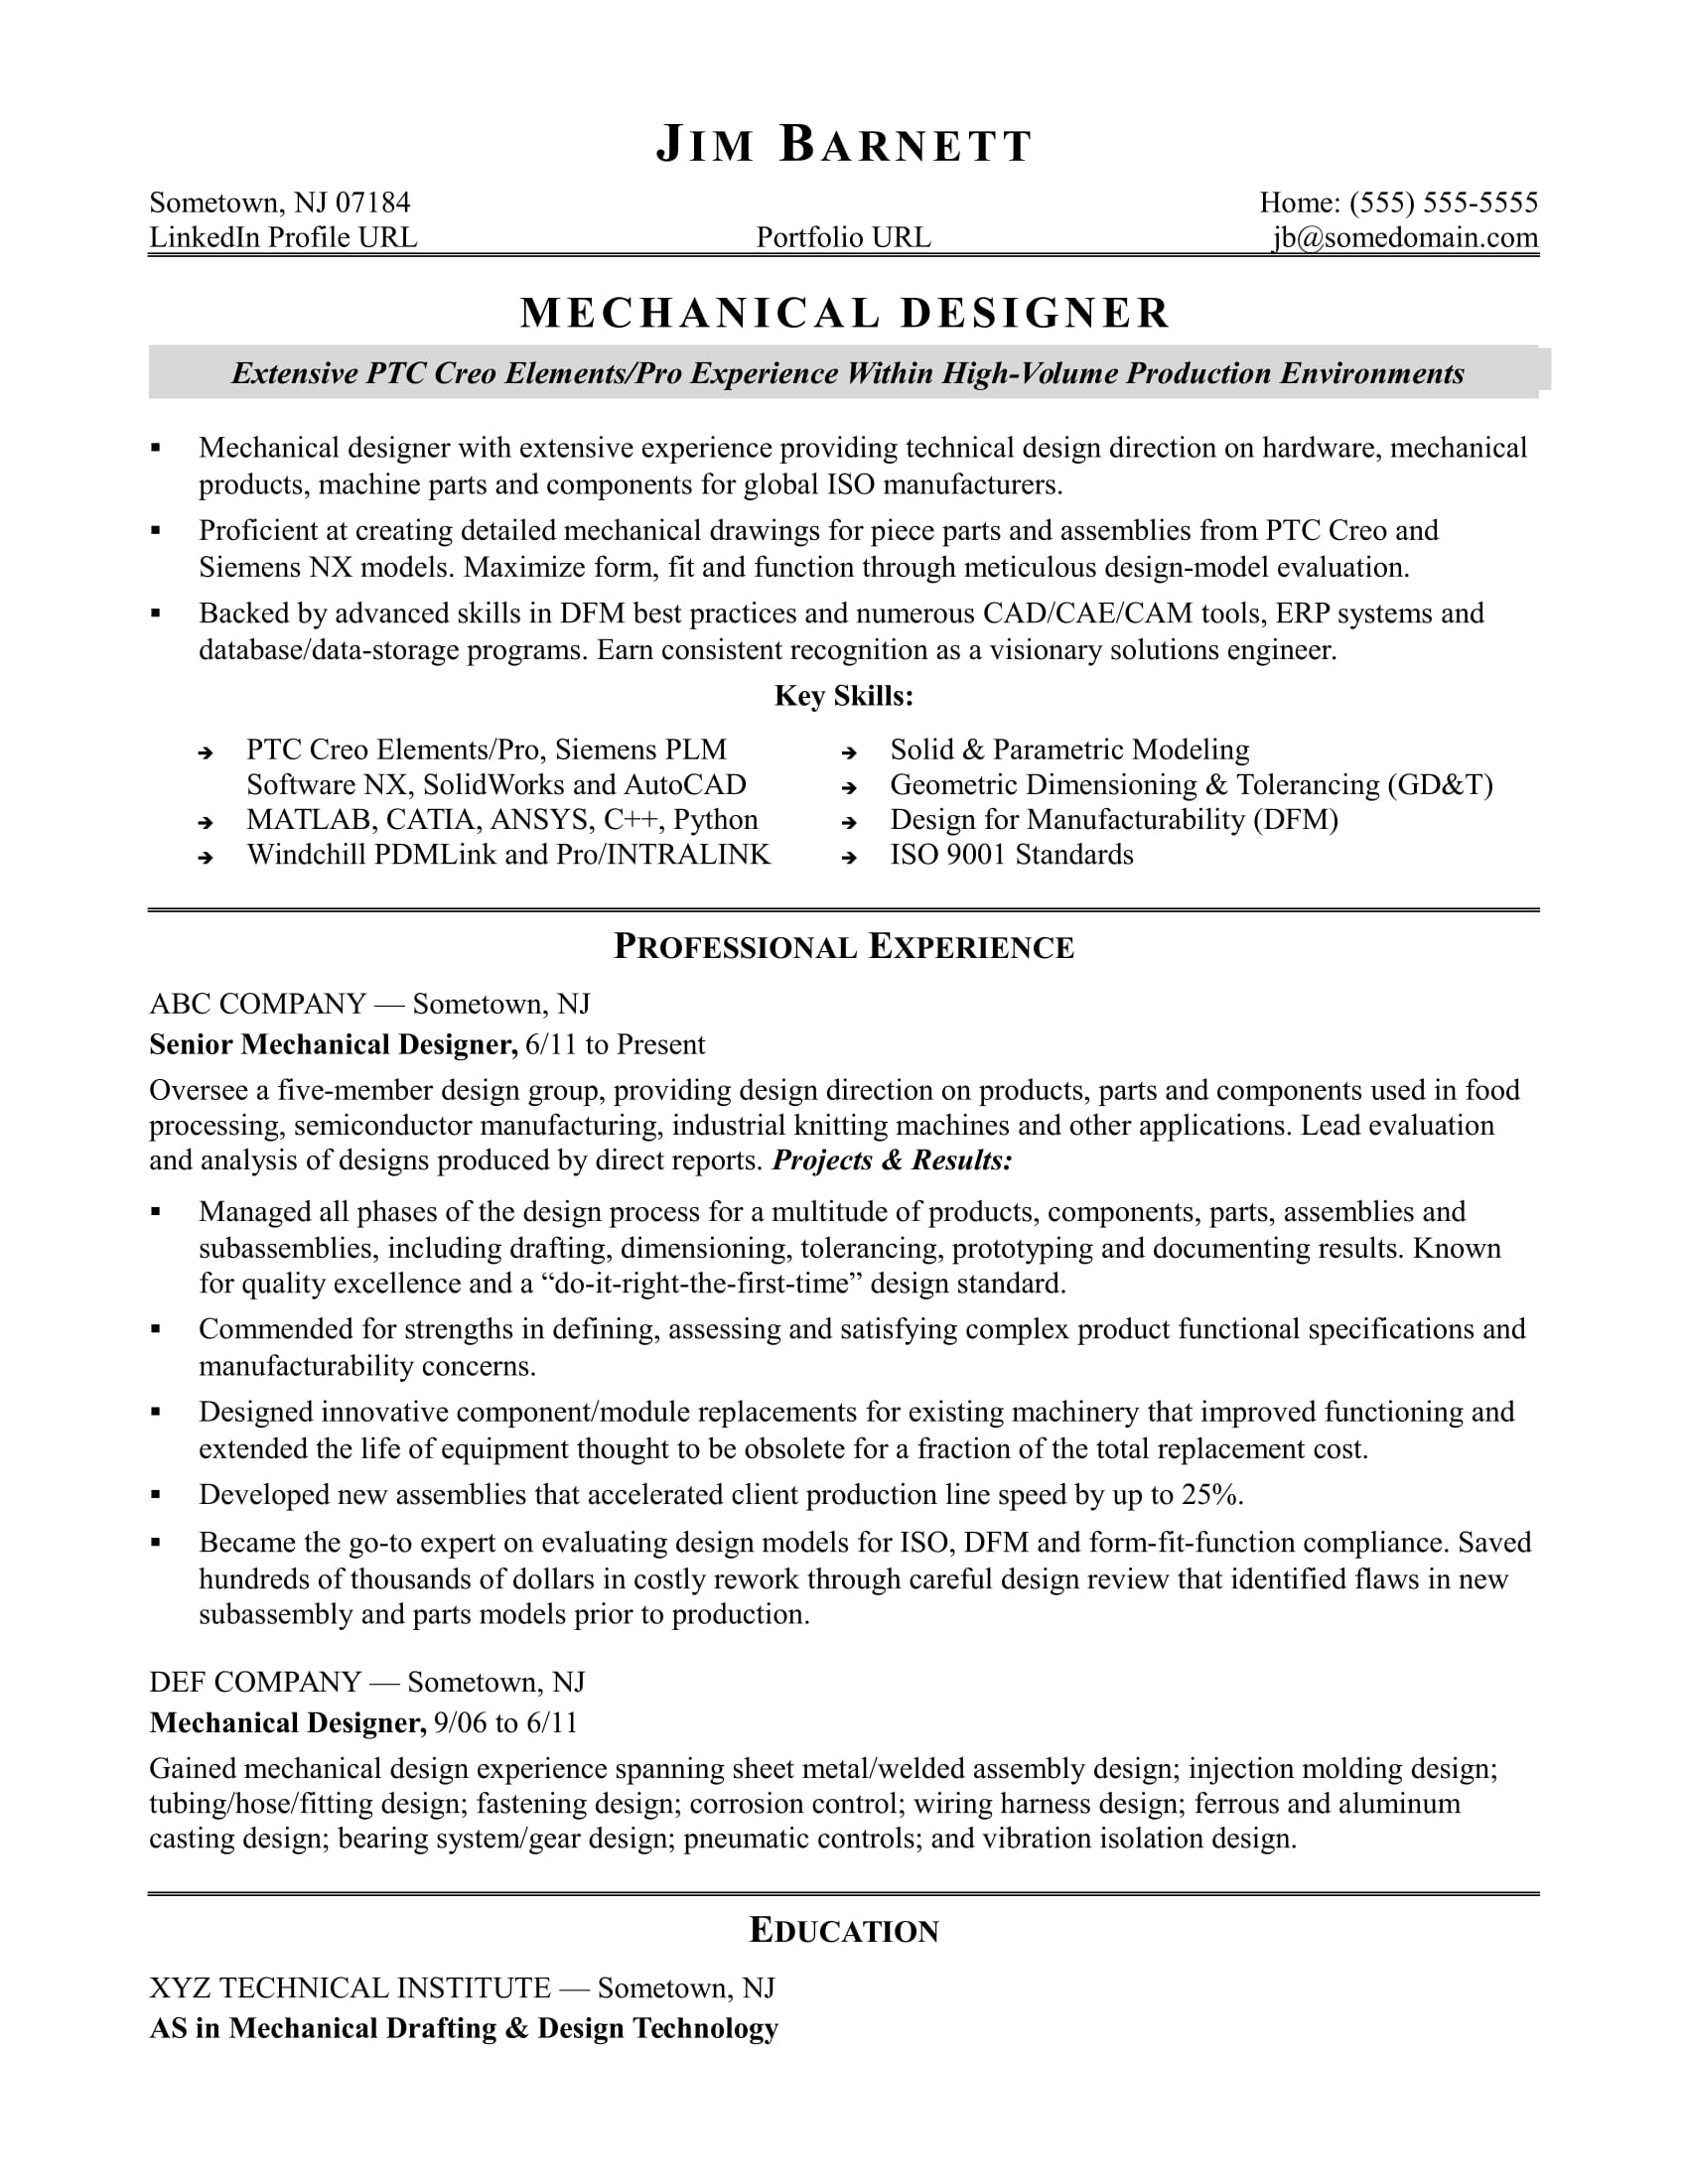 Sample Resume for an Experienced Mechanical Designer